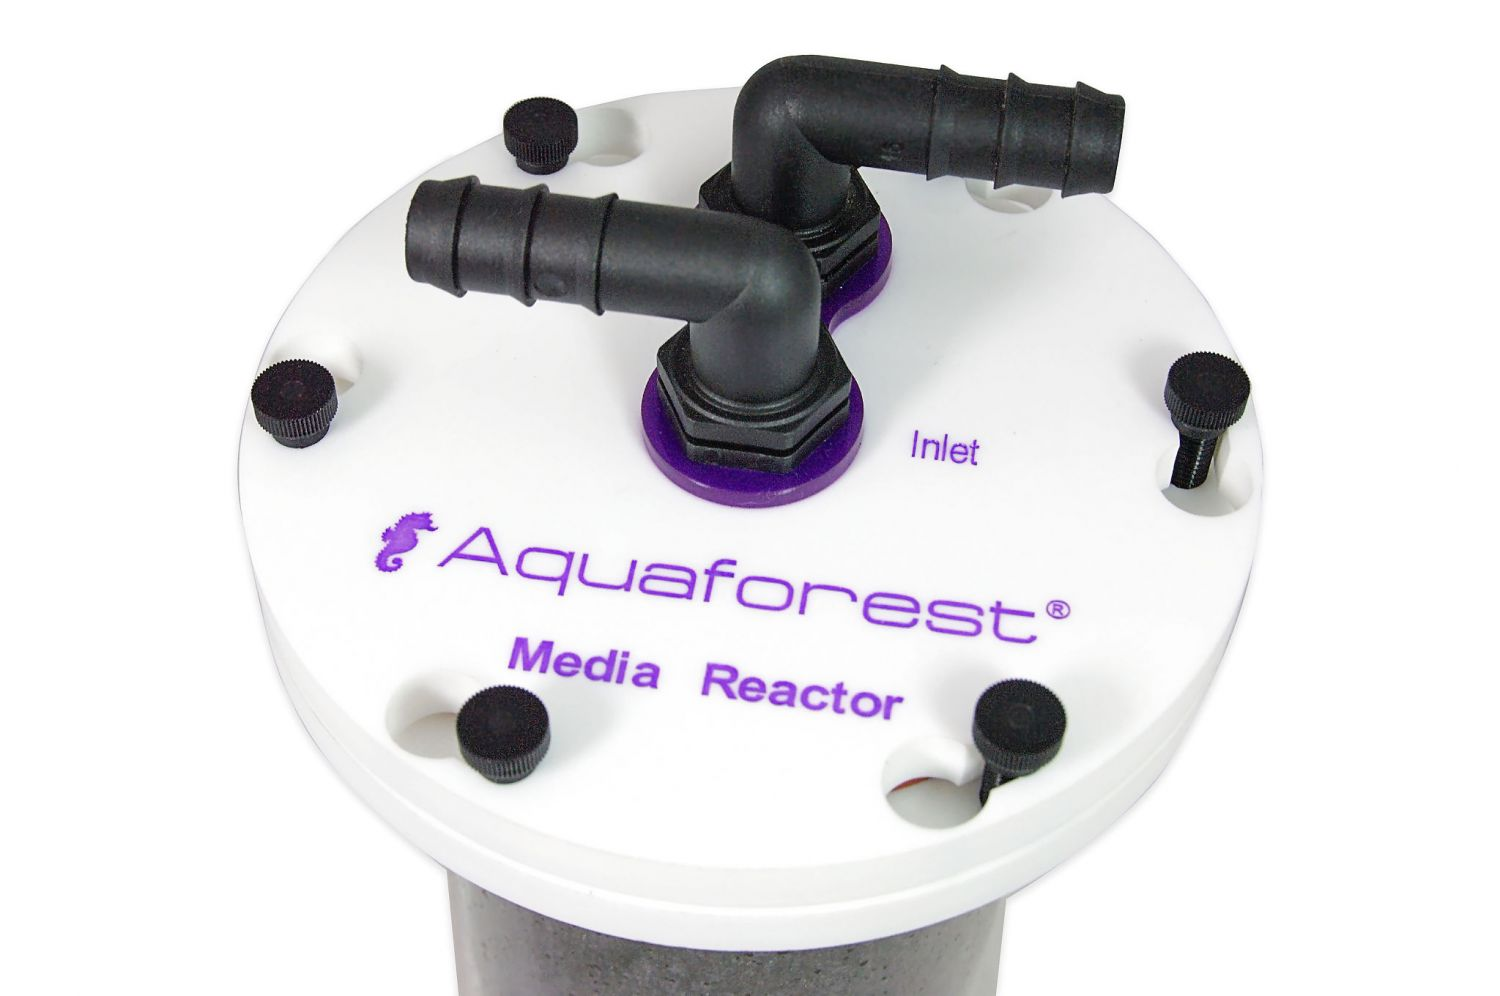 Aquaforest AF 150 Media Reactor